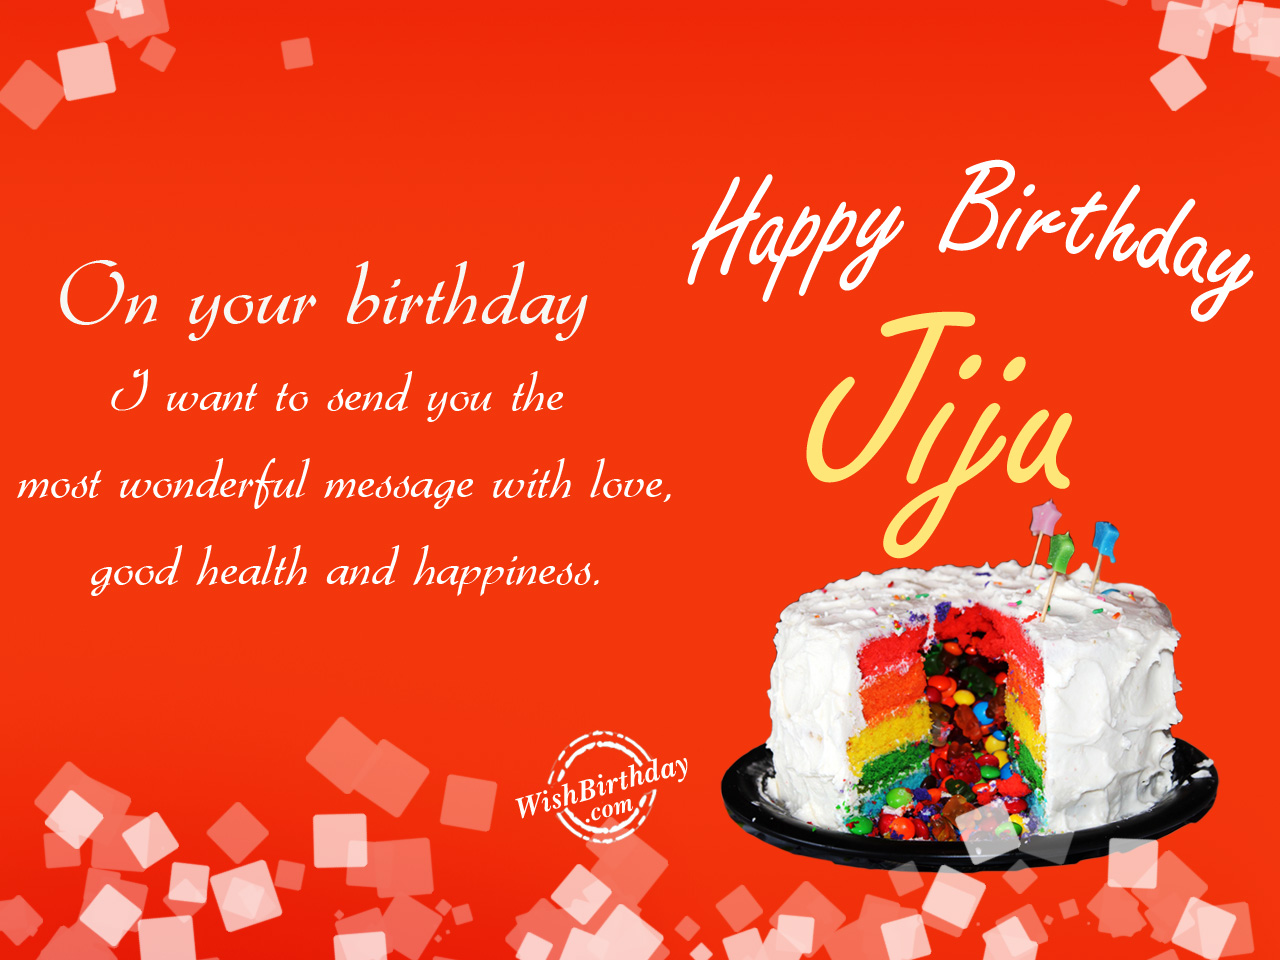 Images Of Birthday Cake For Jiju : sister and jiju quotes anniversary wishes image pic. happy ...